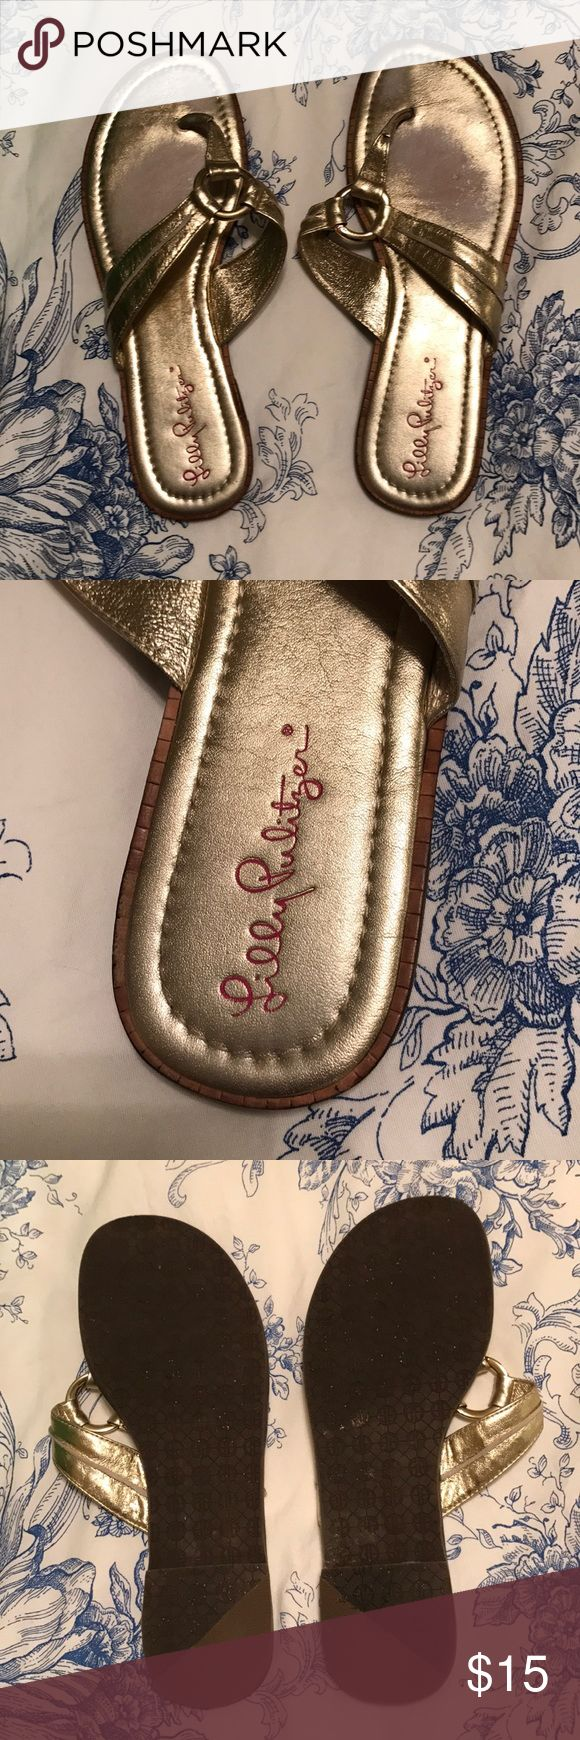 Lilly Pulitzer Gold Sandals Worn, super comfortable, go with everything Lilly Pulitzer Shoes Sandals